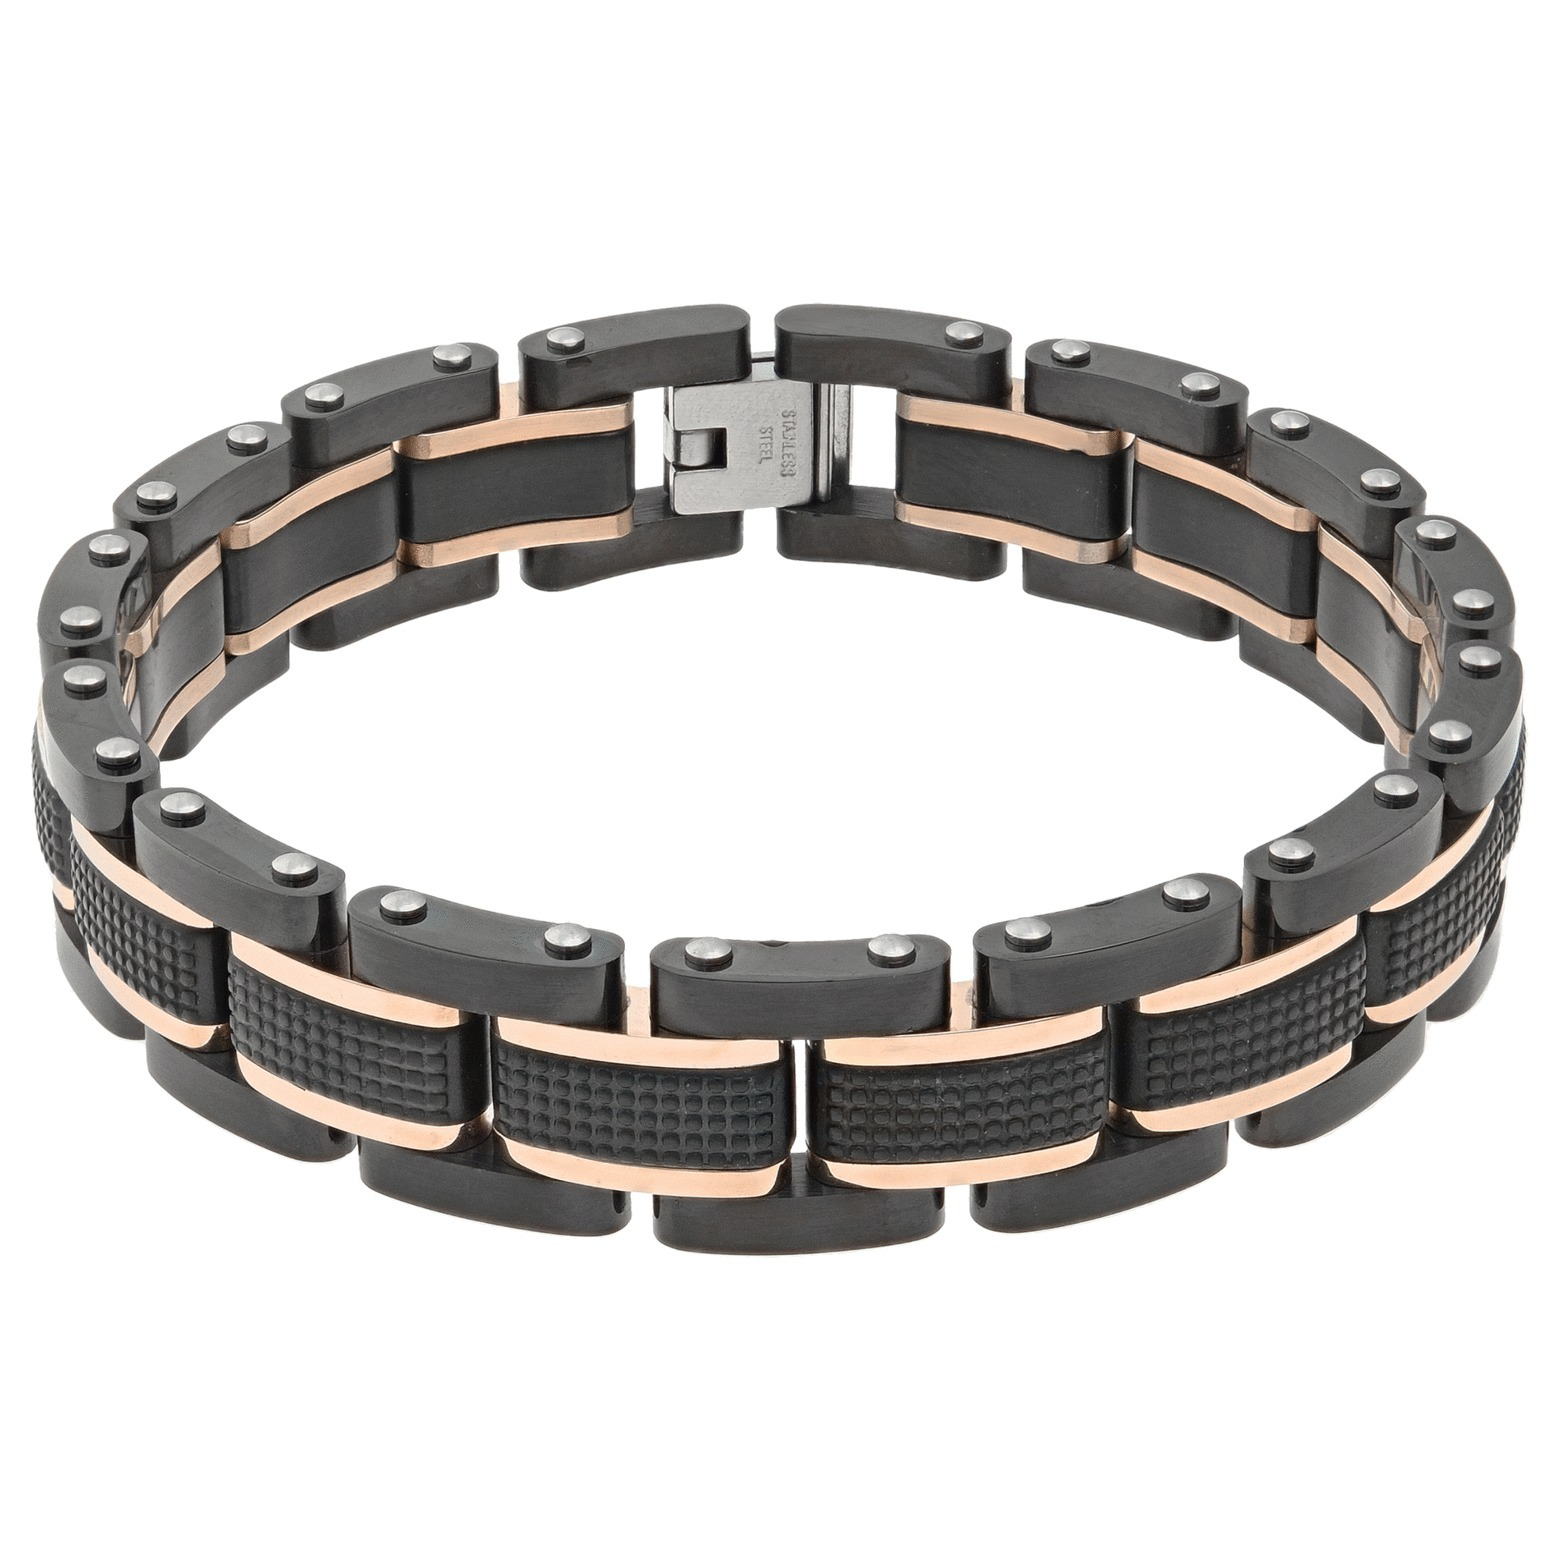 Stainless Steel Textured Bracelet Blue Ip Plating